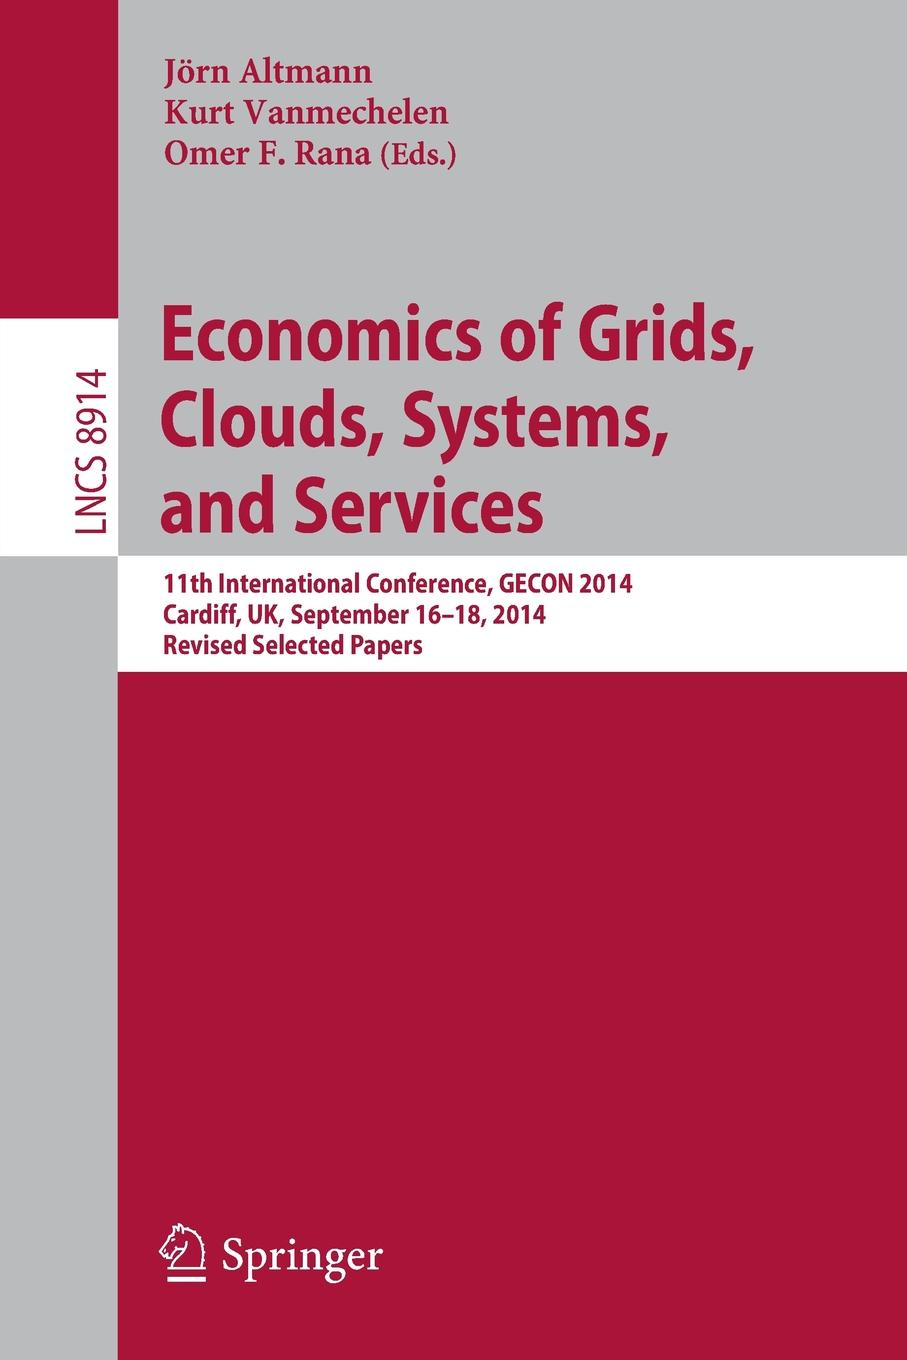 Economics of Grids, Clouds, Systems, and Services. 11th International Conference, GECON 2014, Cardiff, UK, September 16-18, 2014. Revised Selected Papers. jools holland cardiff